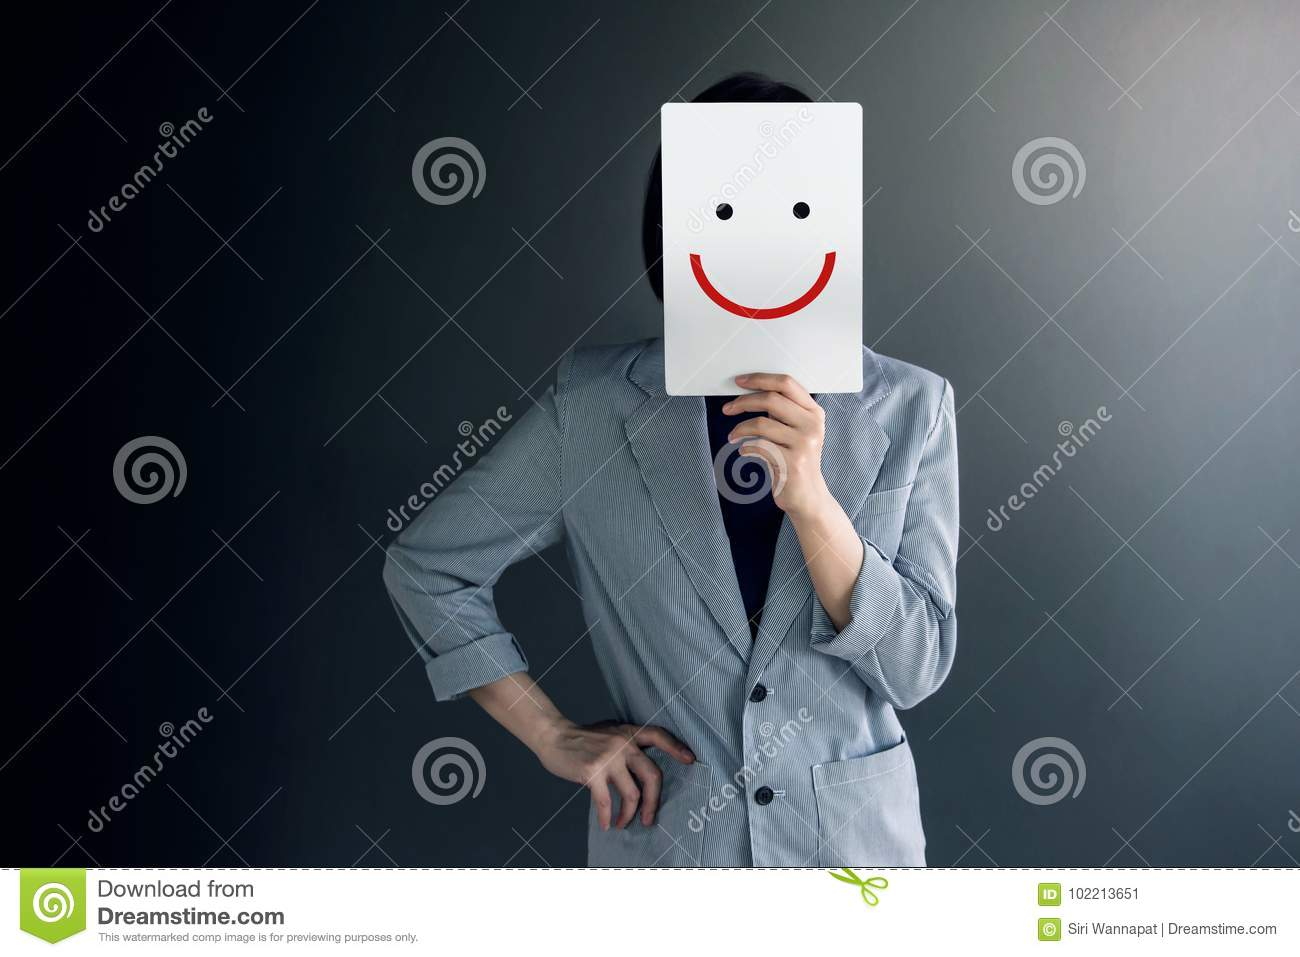 Customer Experience Concept, Portrait of Client with Feeling Hap